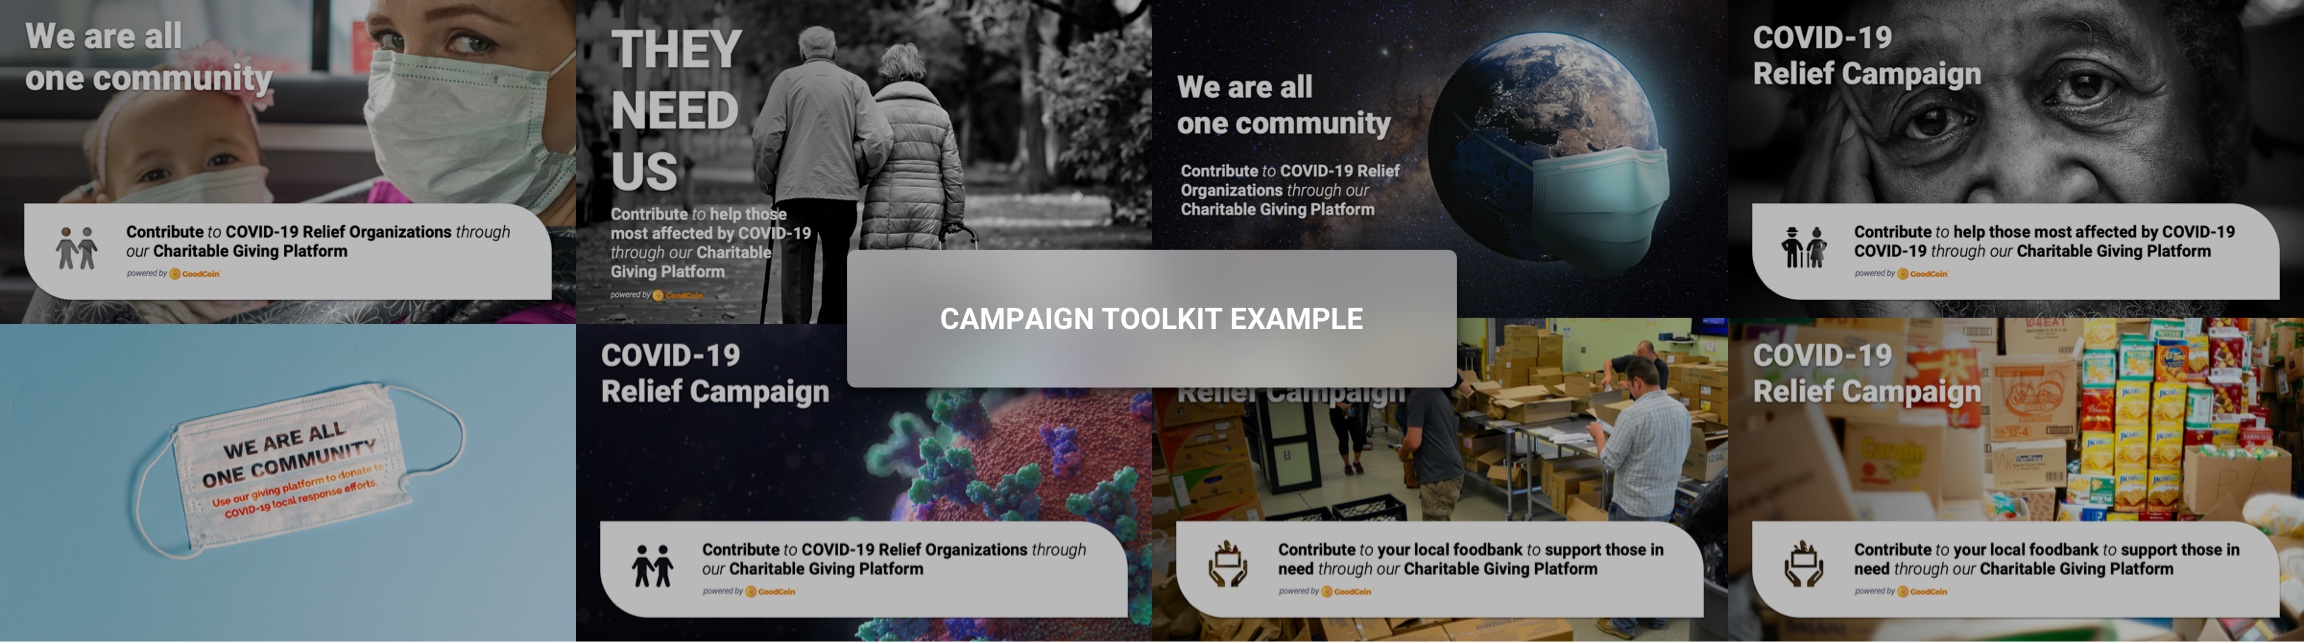 1586811463 campaign toolkit example